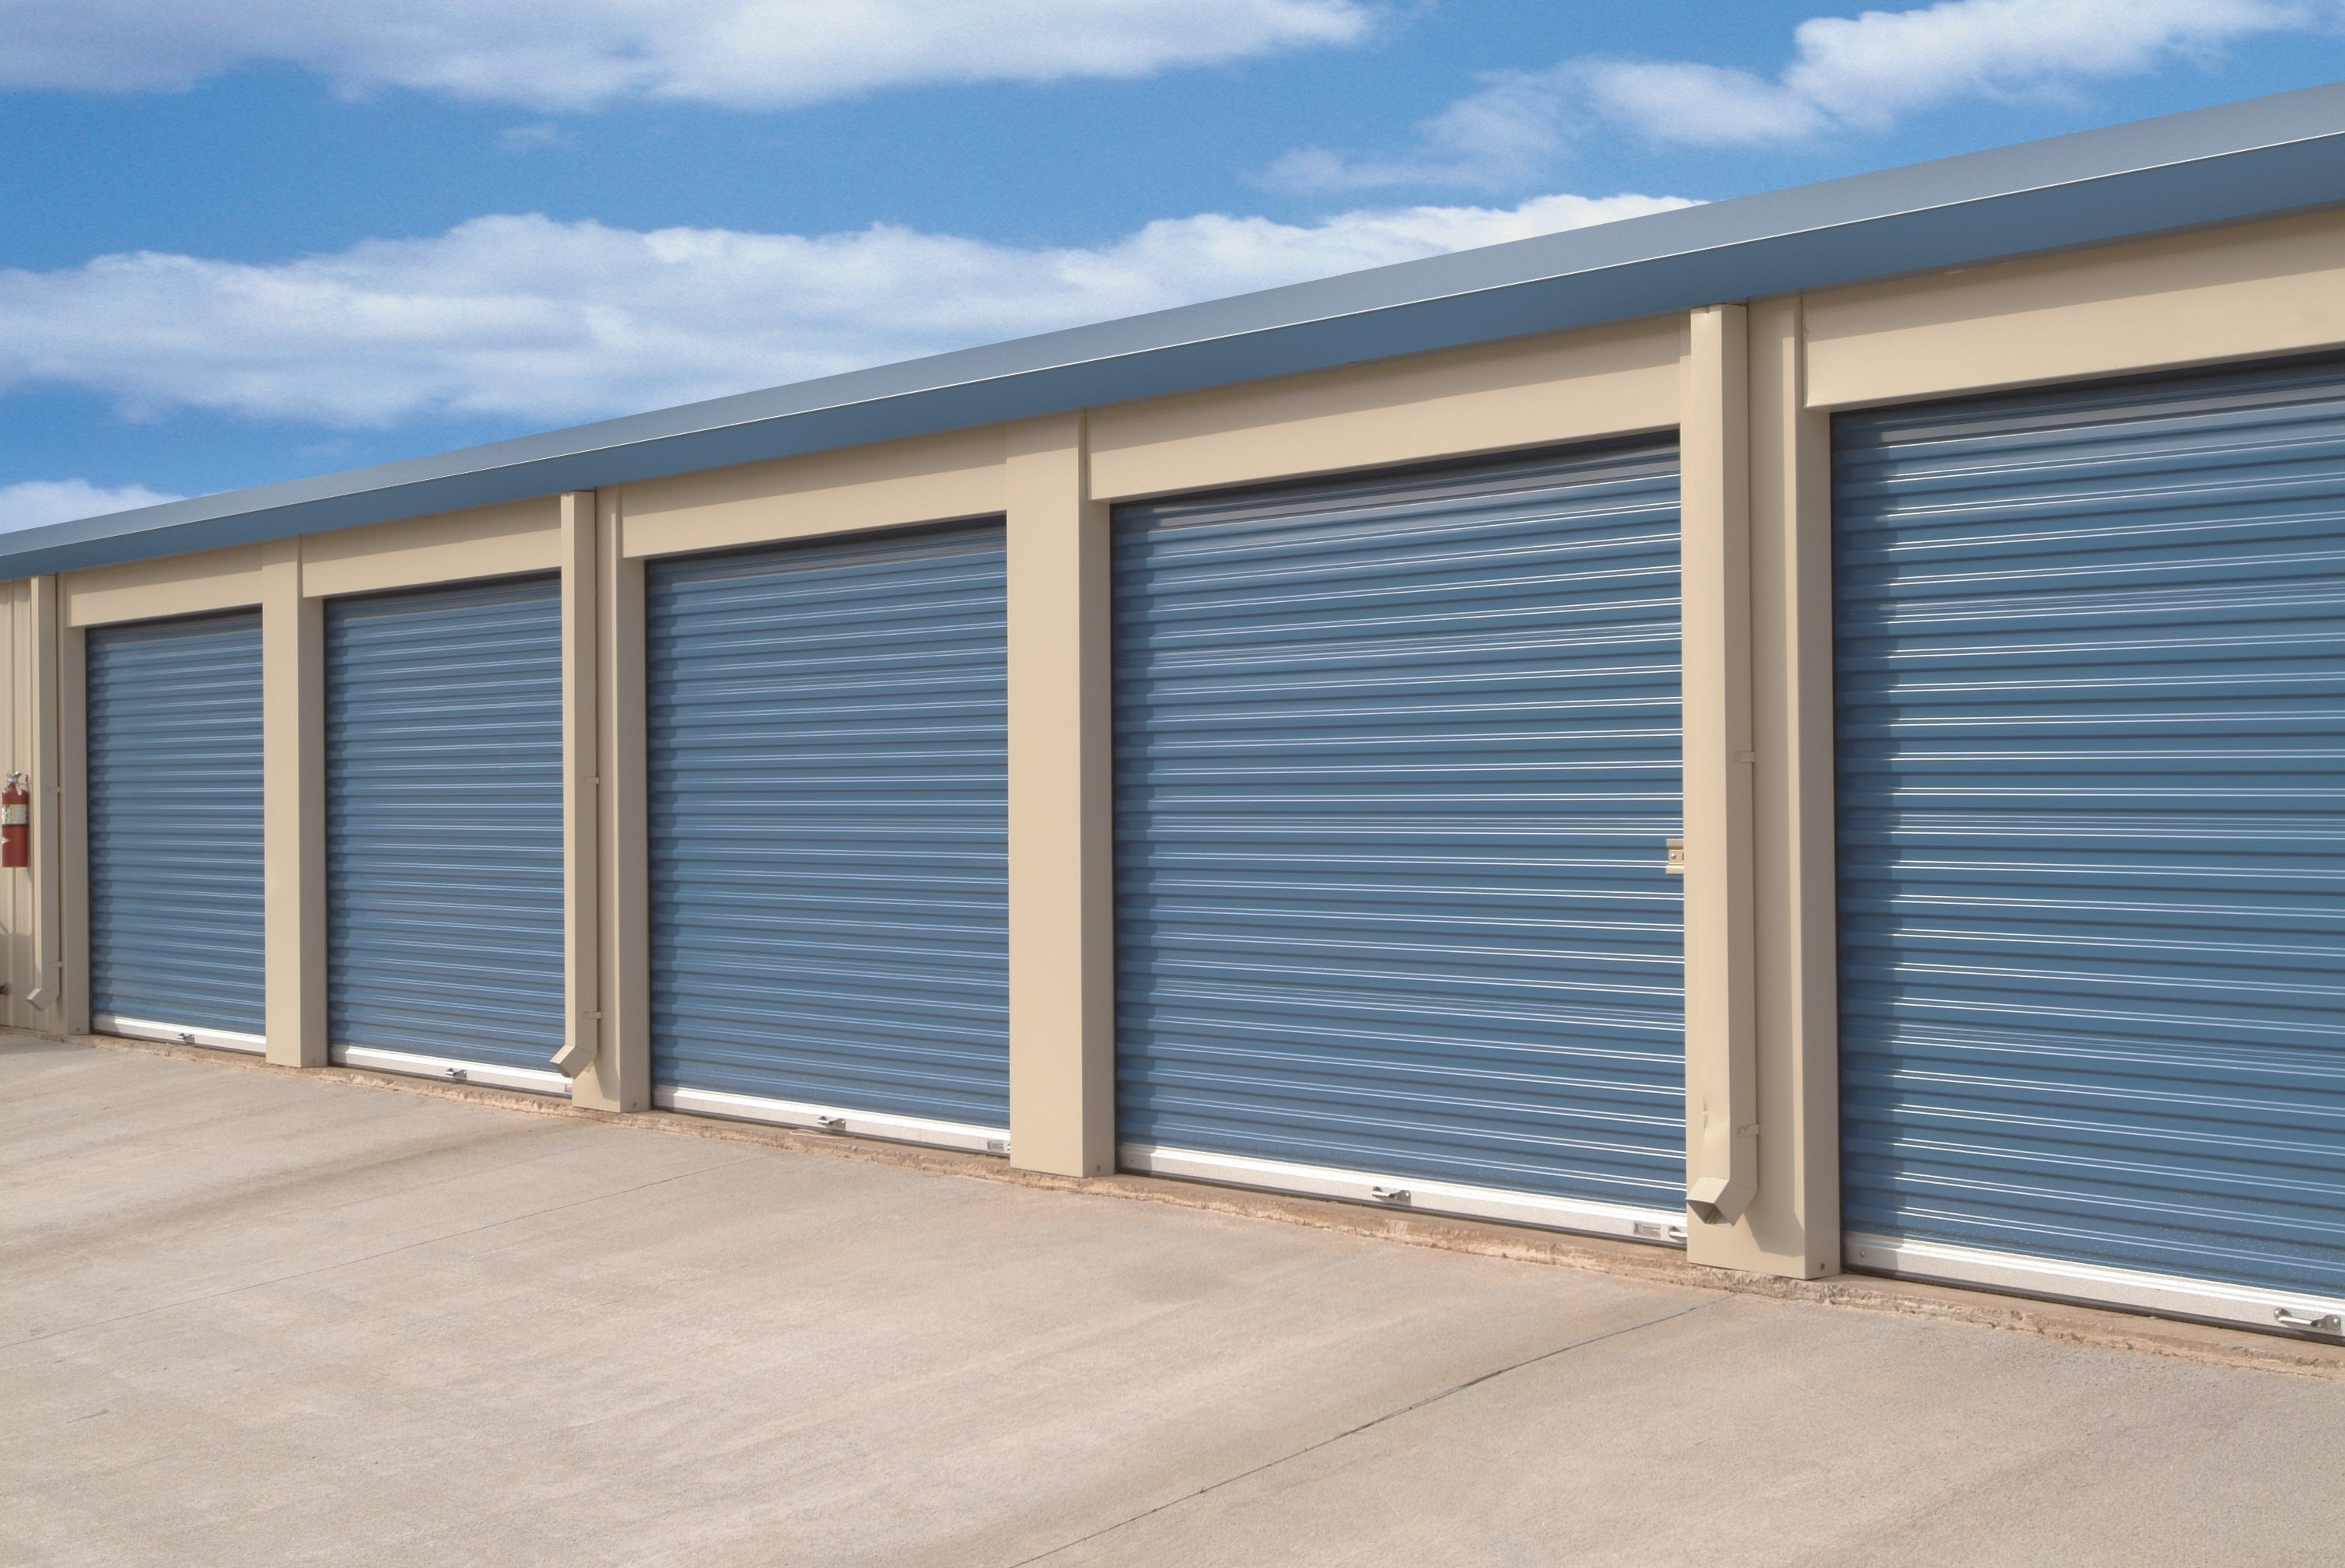 facade door sectional commercial doors systems garage